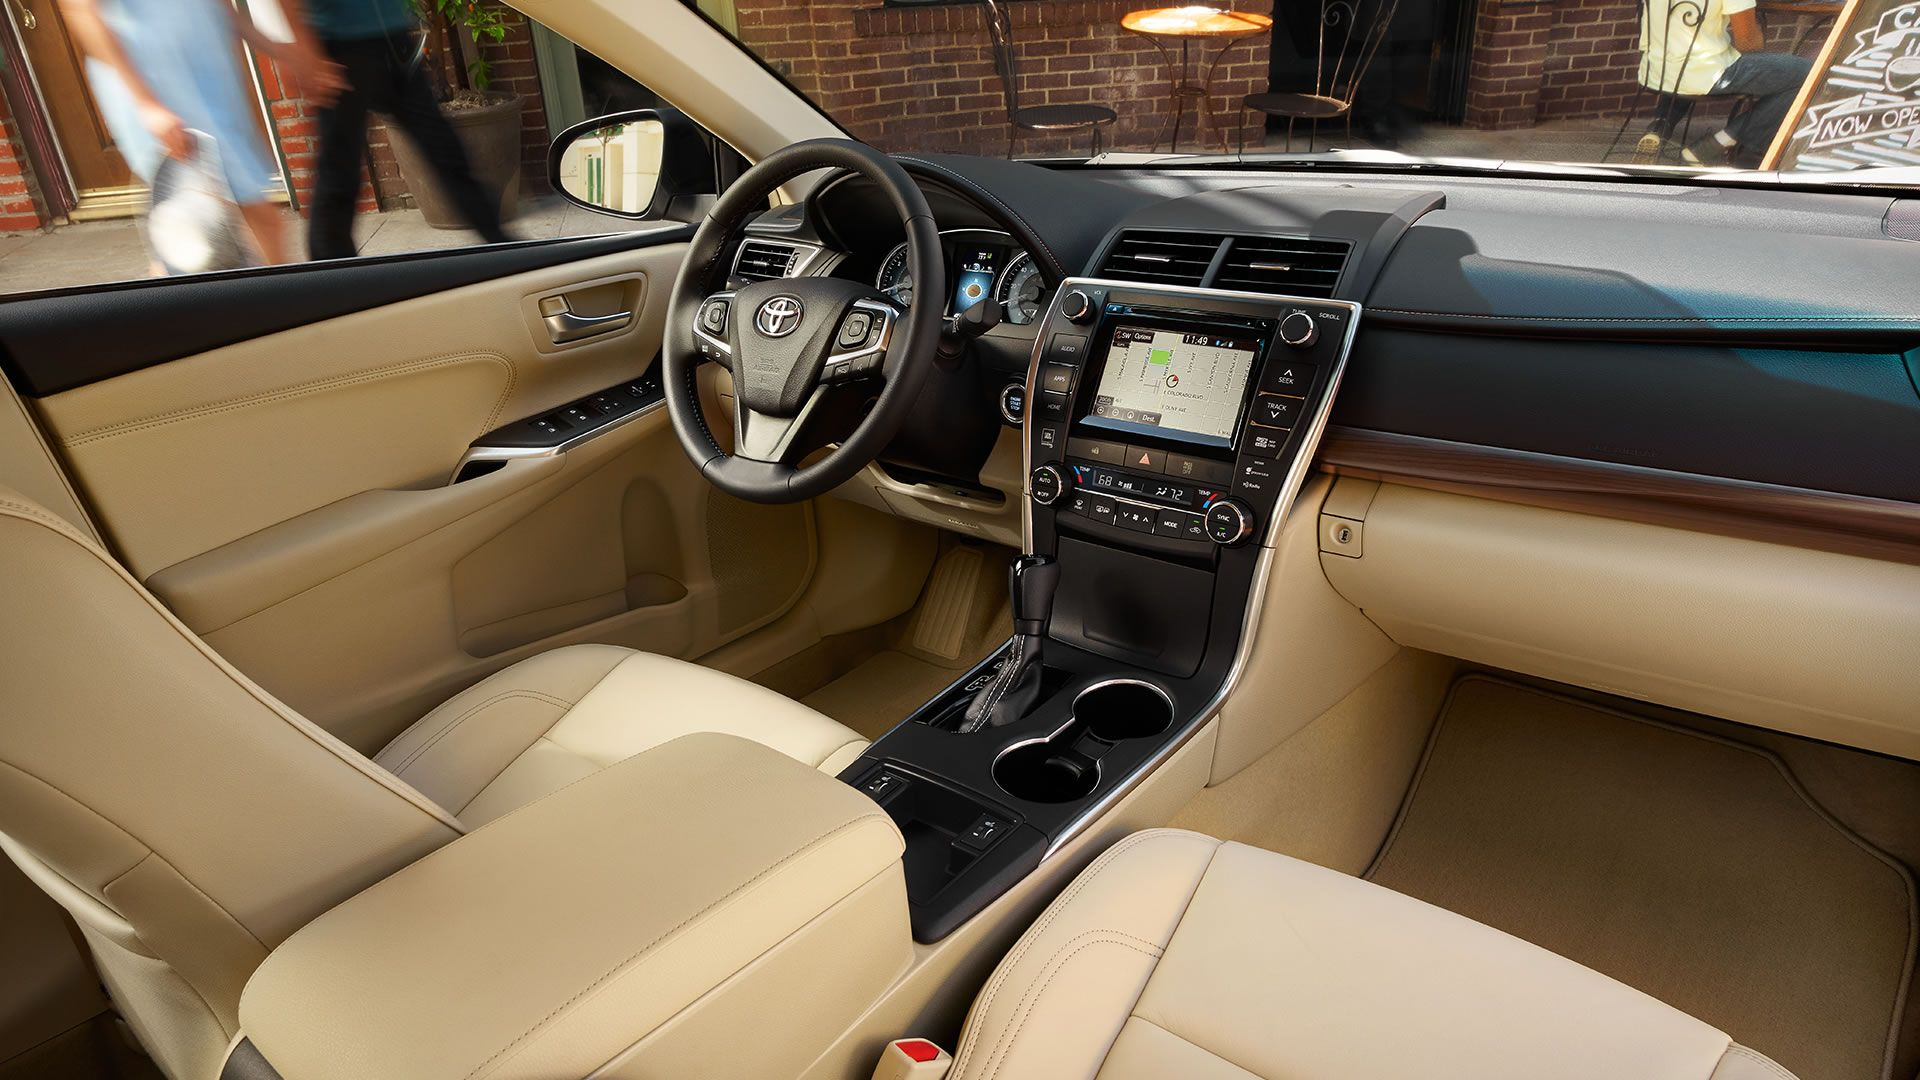 View Toyota Camry interior and exterior photos and ready to